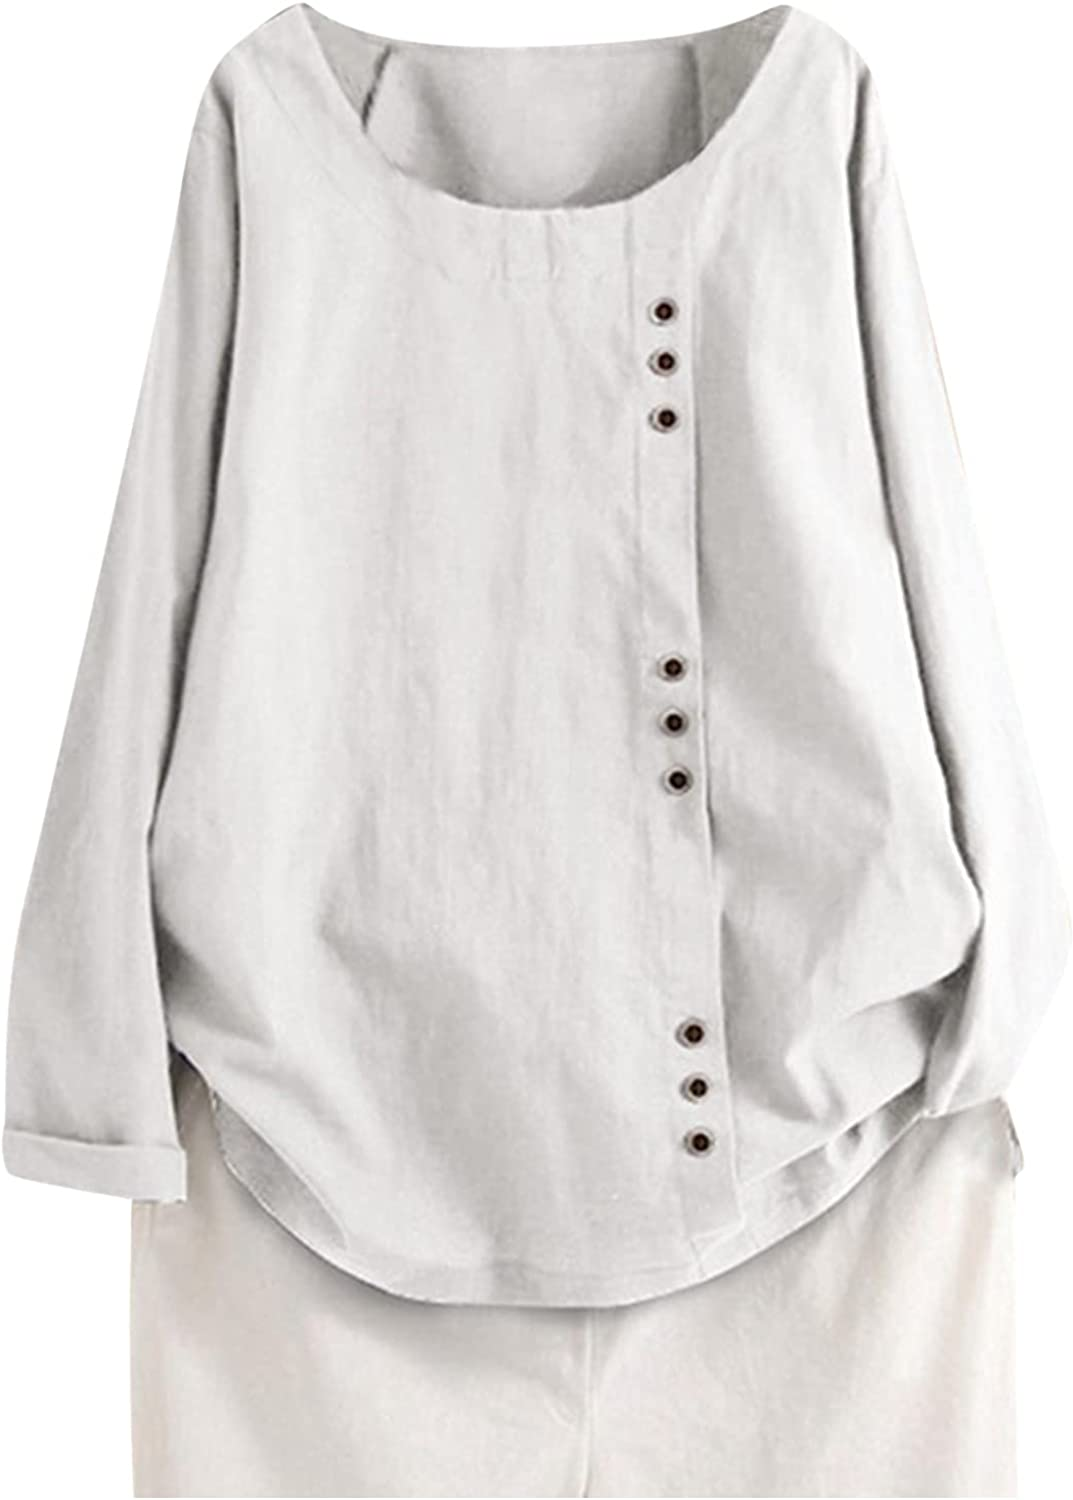 Plus Size Long Sleeves Tops for Neck Boat Top Cotton sale Branded goods Linen Women